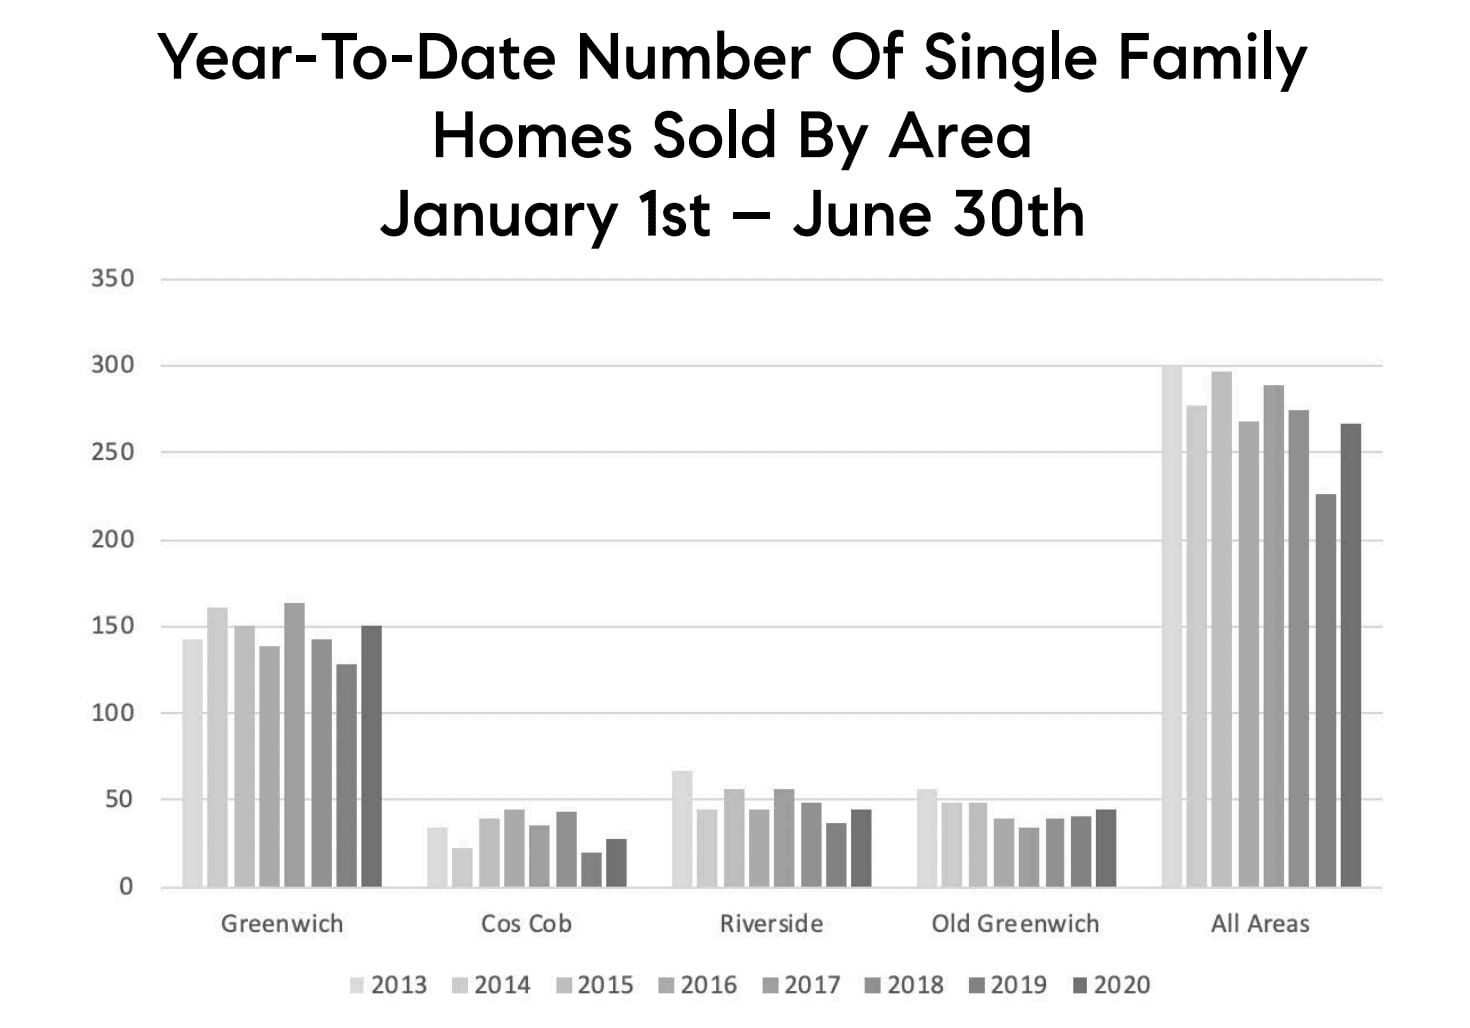 Jan-June 30 2020 Number of Single Family Homes Sold by Area